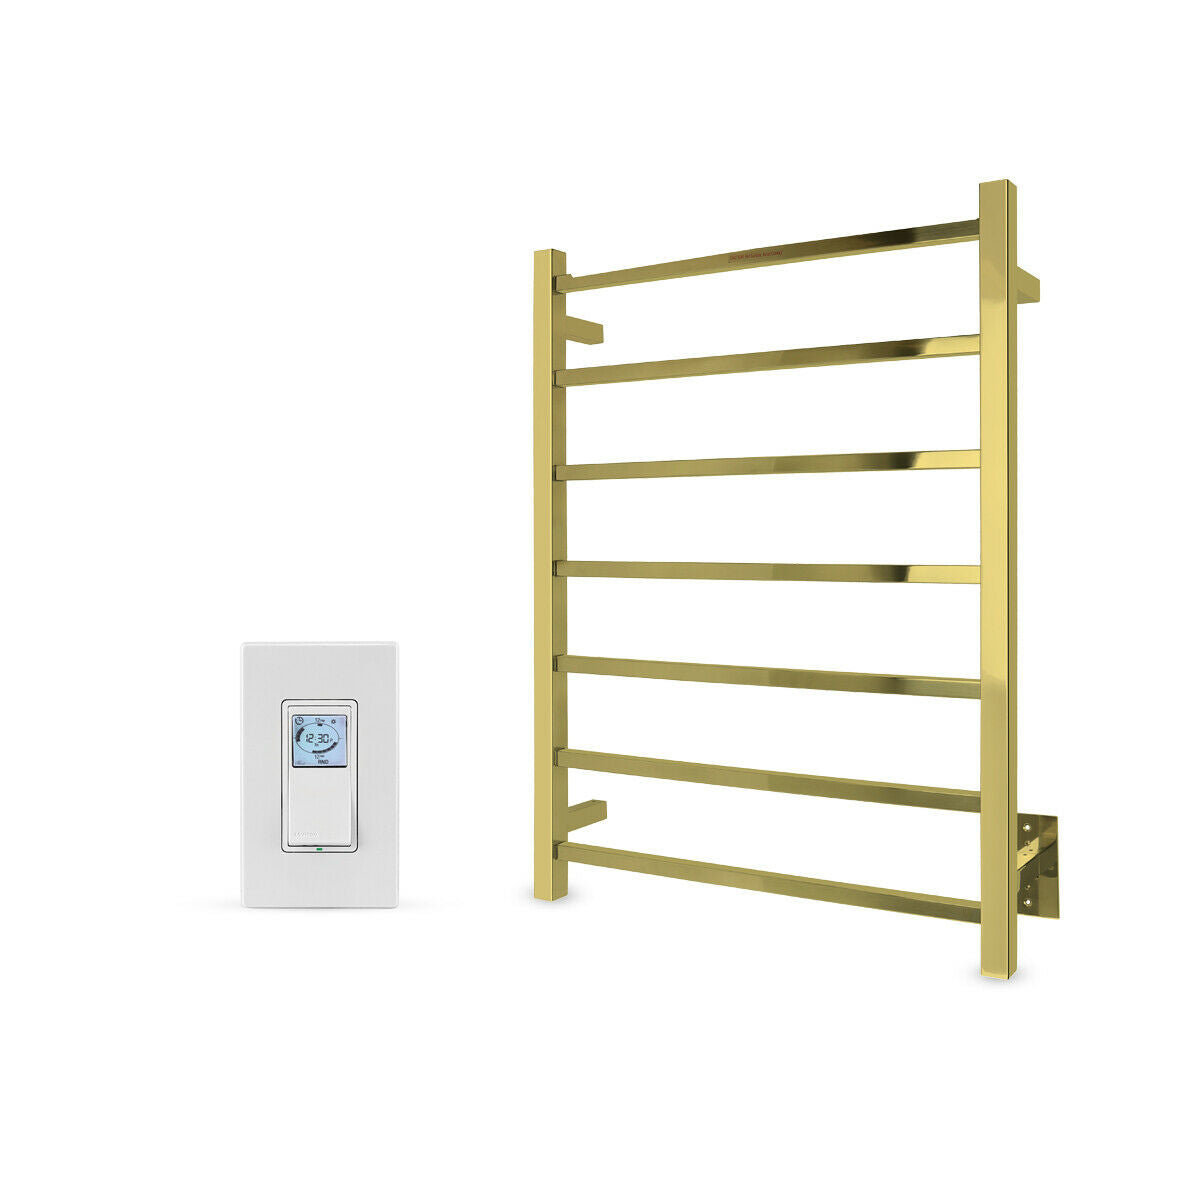 Gold Towel Warmer 7 Bars Hardwired With Programmable Timer, WarmlyYours Tahoe 7